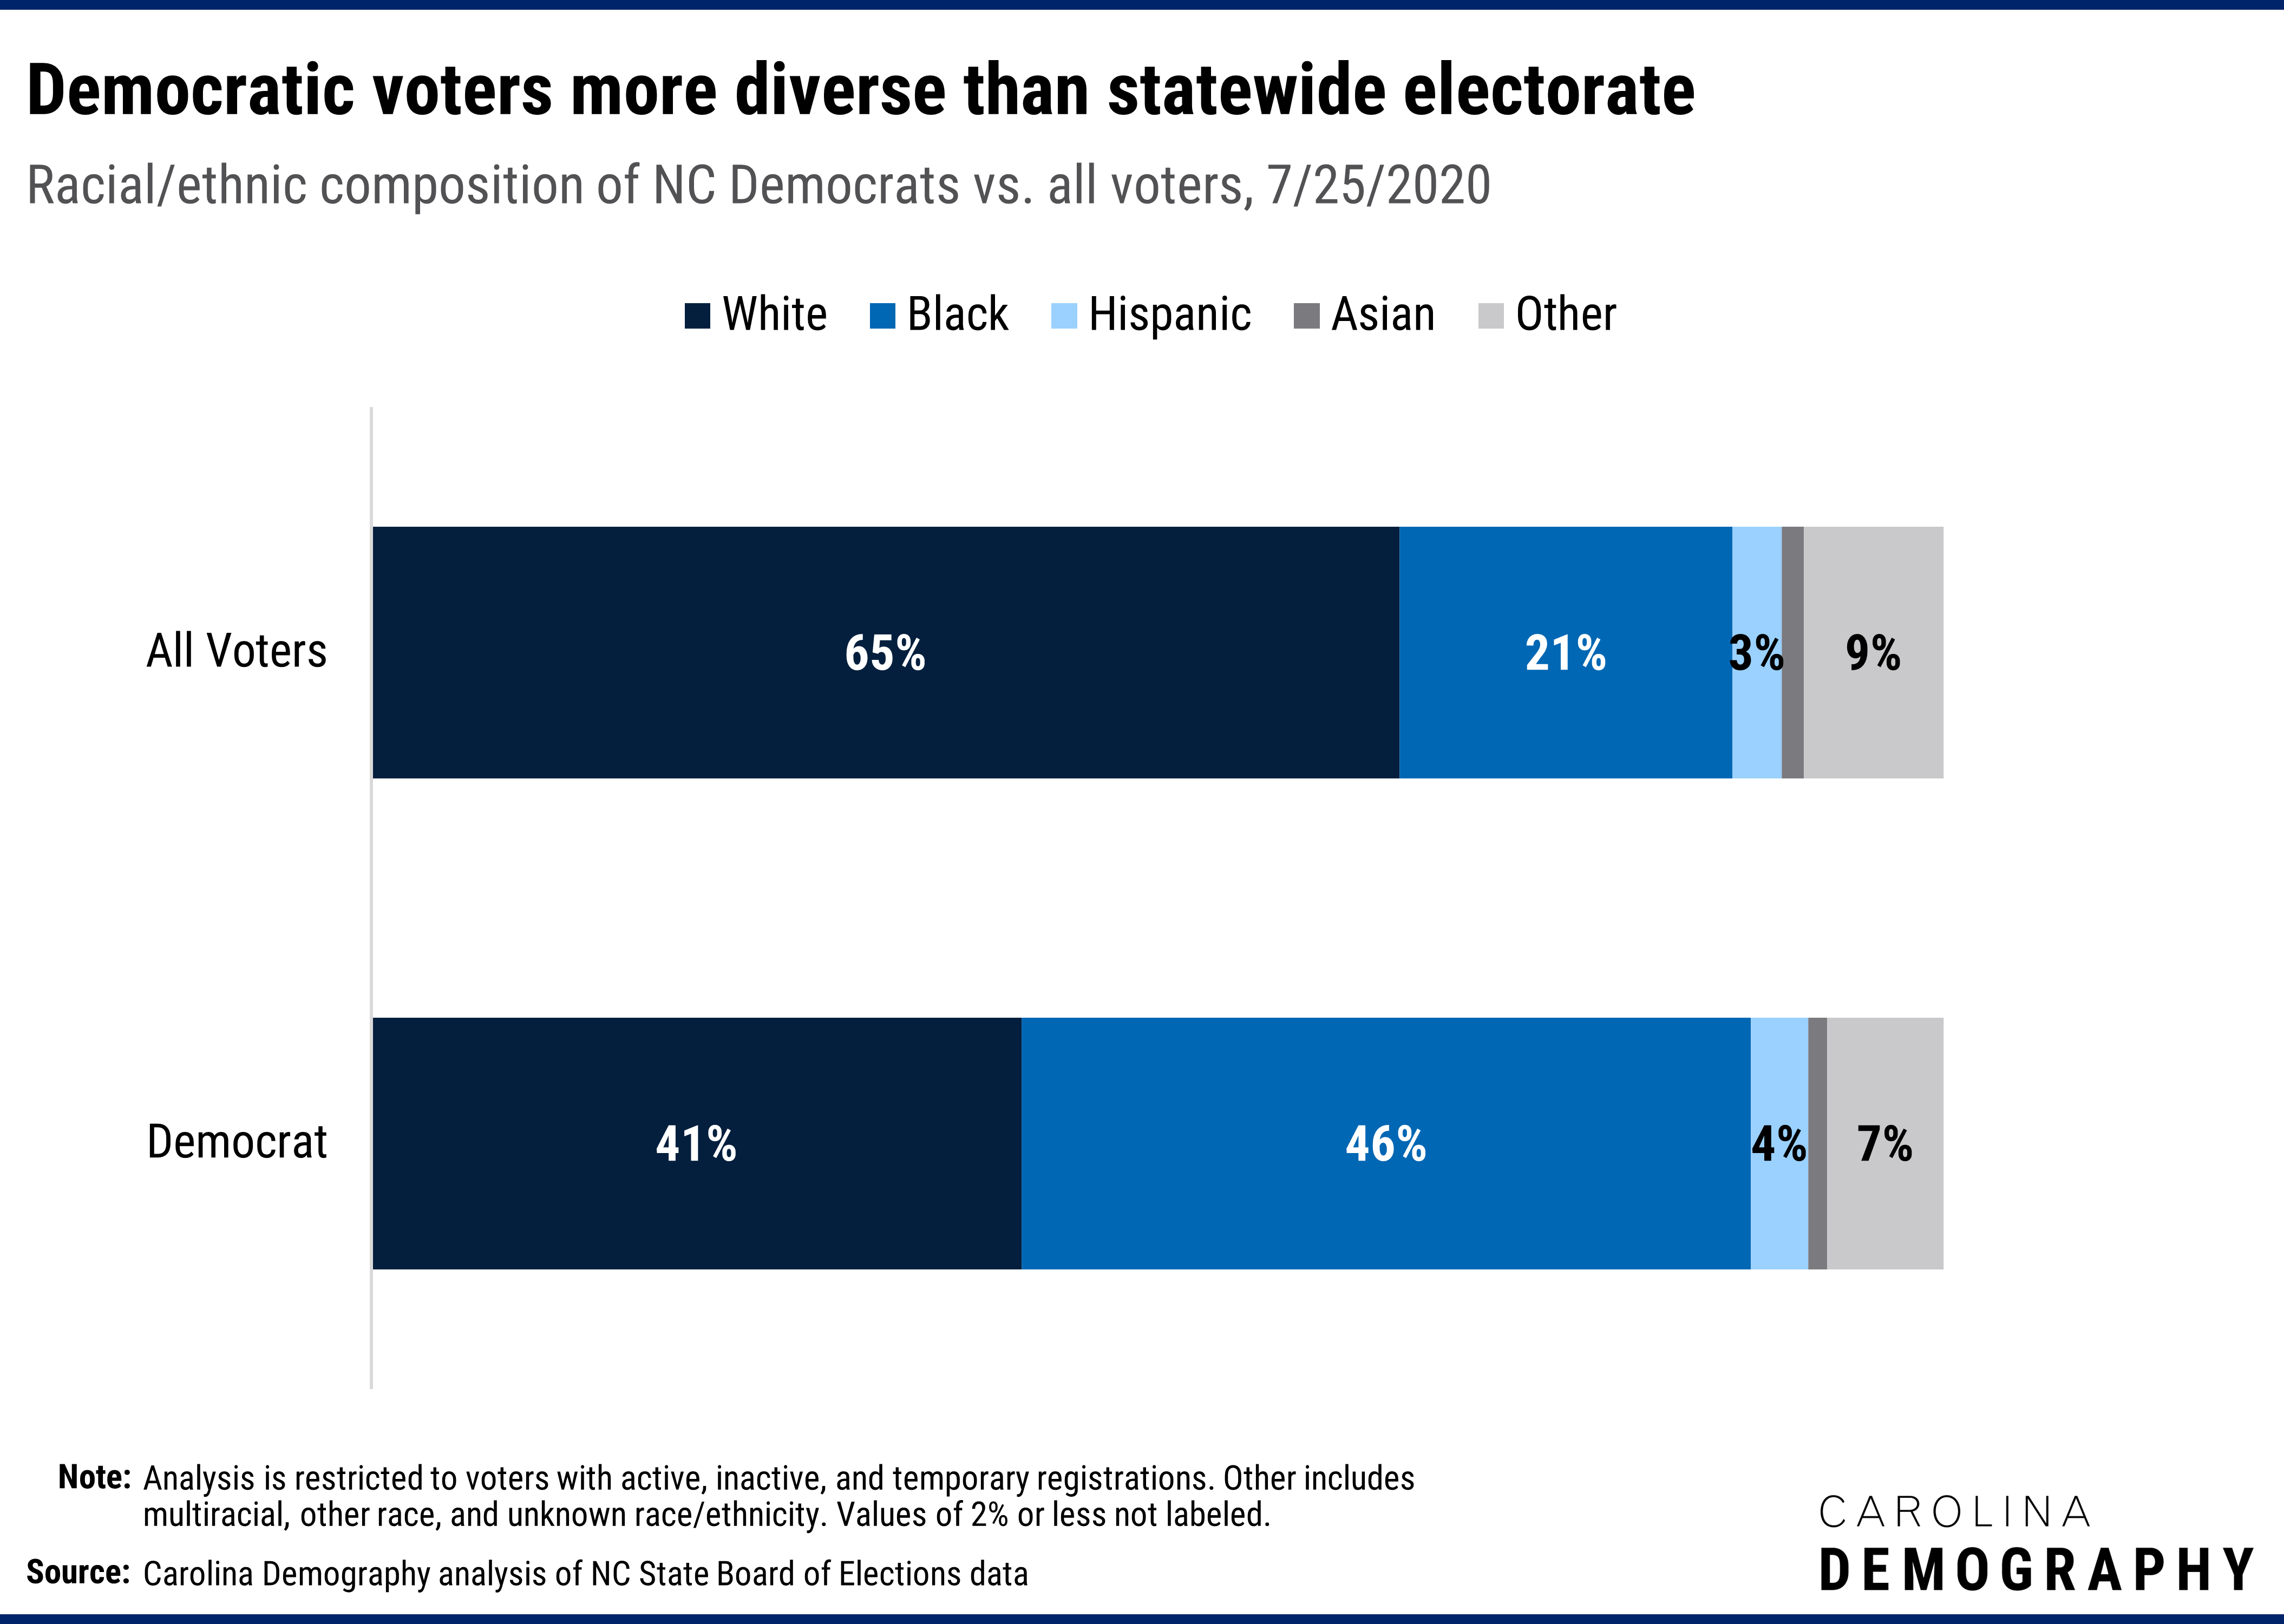 Democratic voters more diverse than statewide electorate Racial/ethnic composition of NC Democrats vs. all voters, 7/25/2020. Democratic voters are more diverse than the statewide electorate. Black voters comprise the largest racial/ethnic group among Democratic voters: 46% versus 21% statewide. White voters are the second largest group among registered Democrats (41% vs. 65% statewide.)